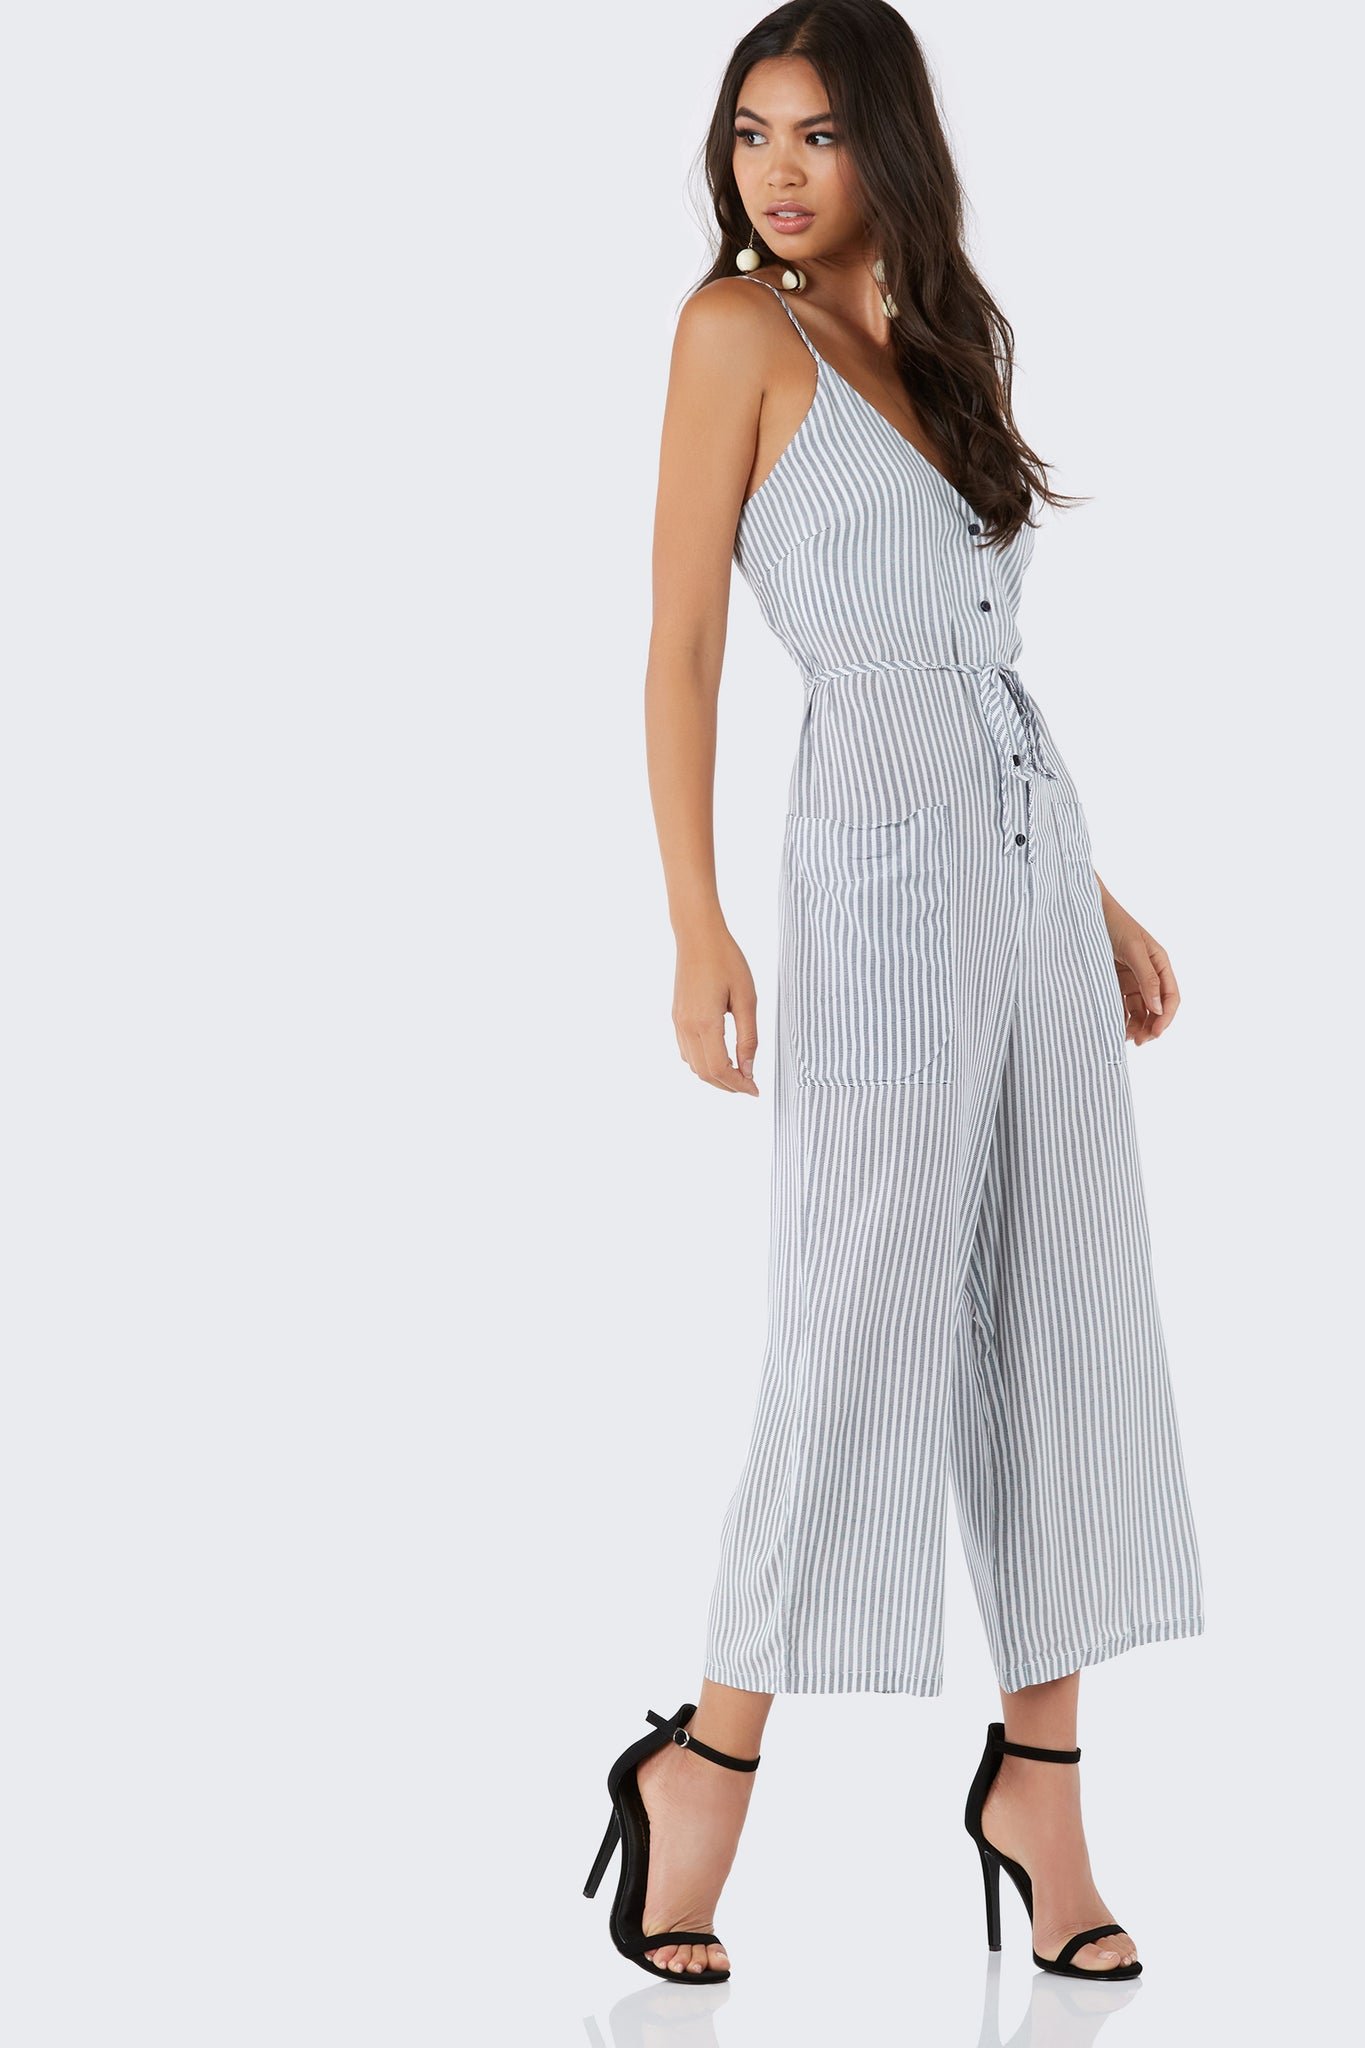 Lightweight sleeveless jumpsuit with stripe patterns throughout. Button front closure with loose fit.